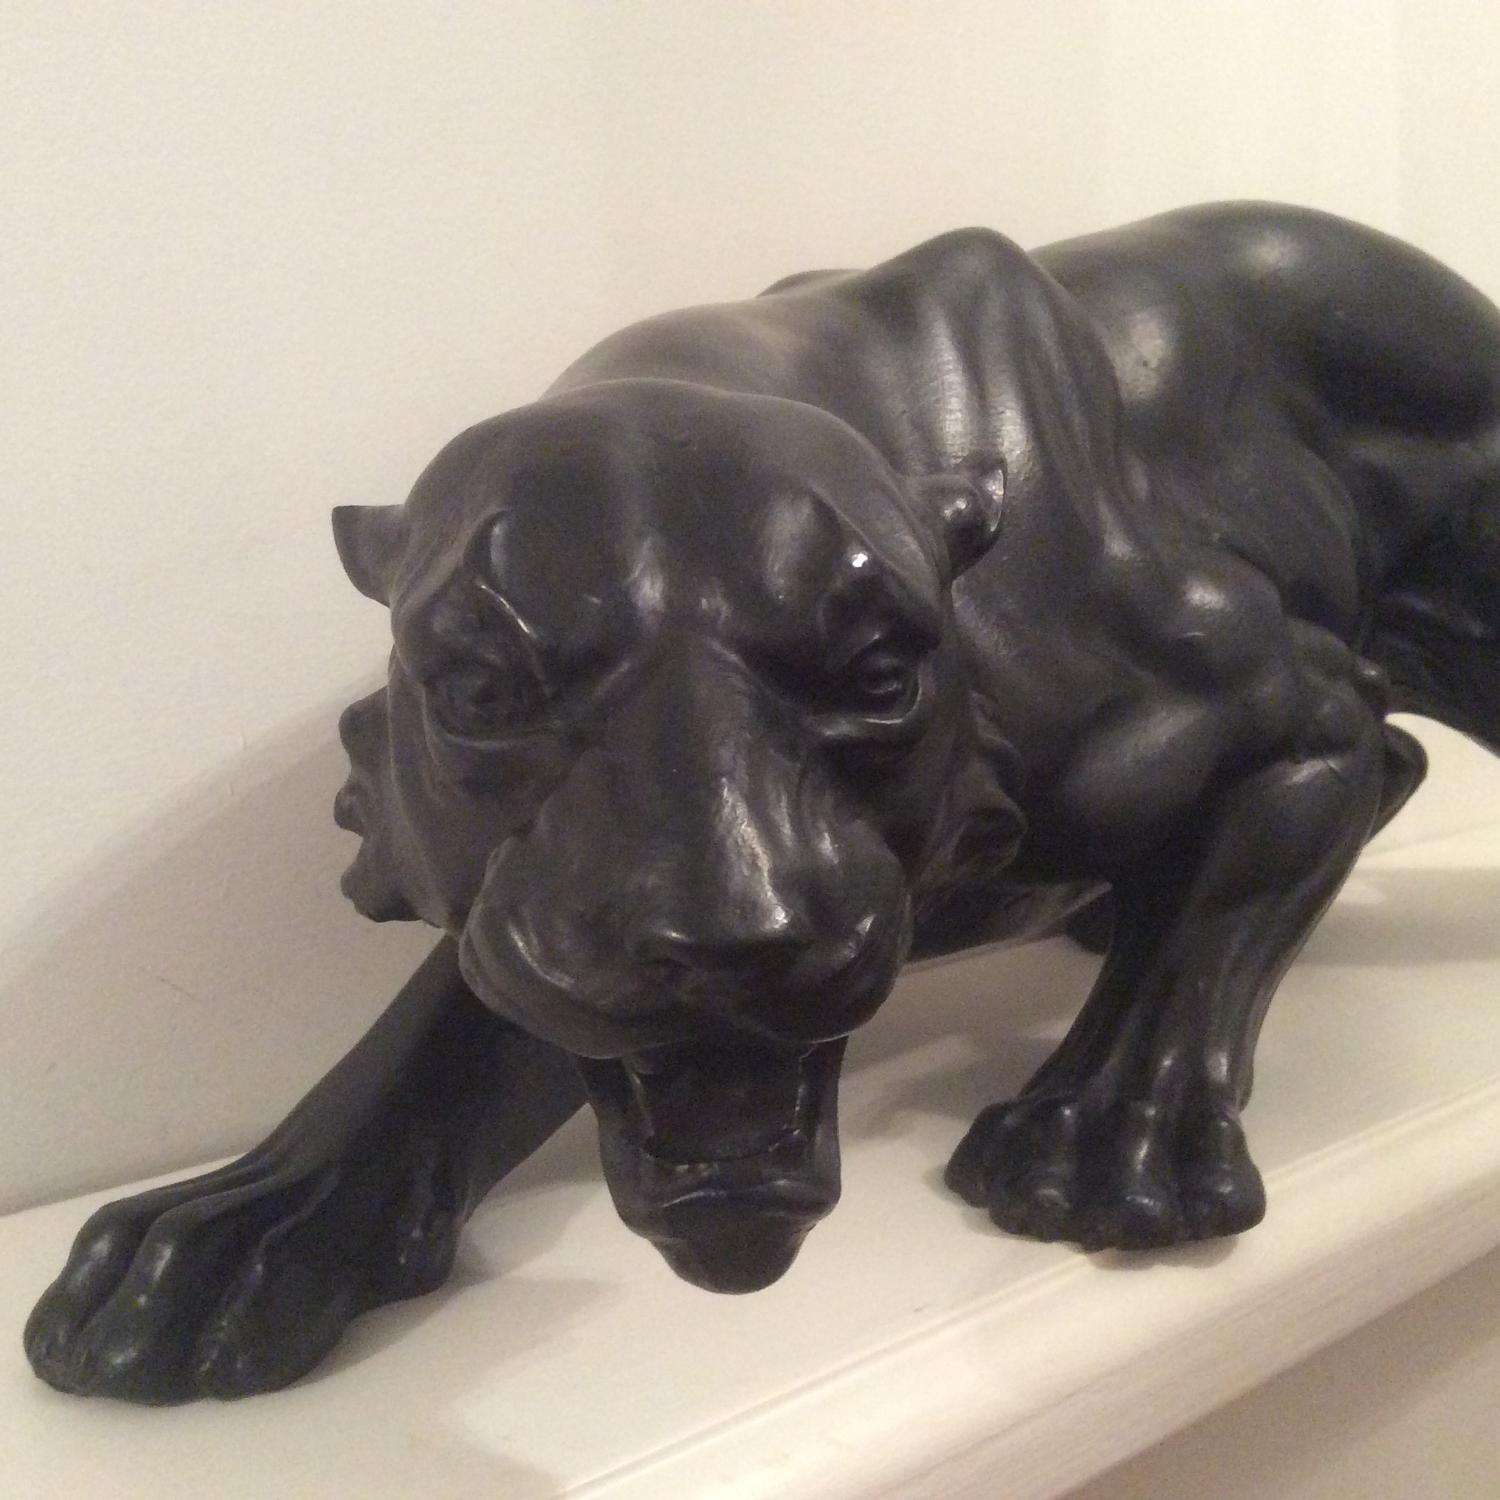 Decorative figure of a Panther